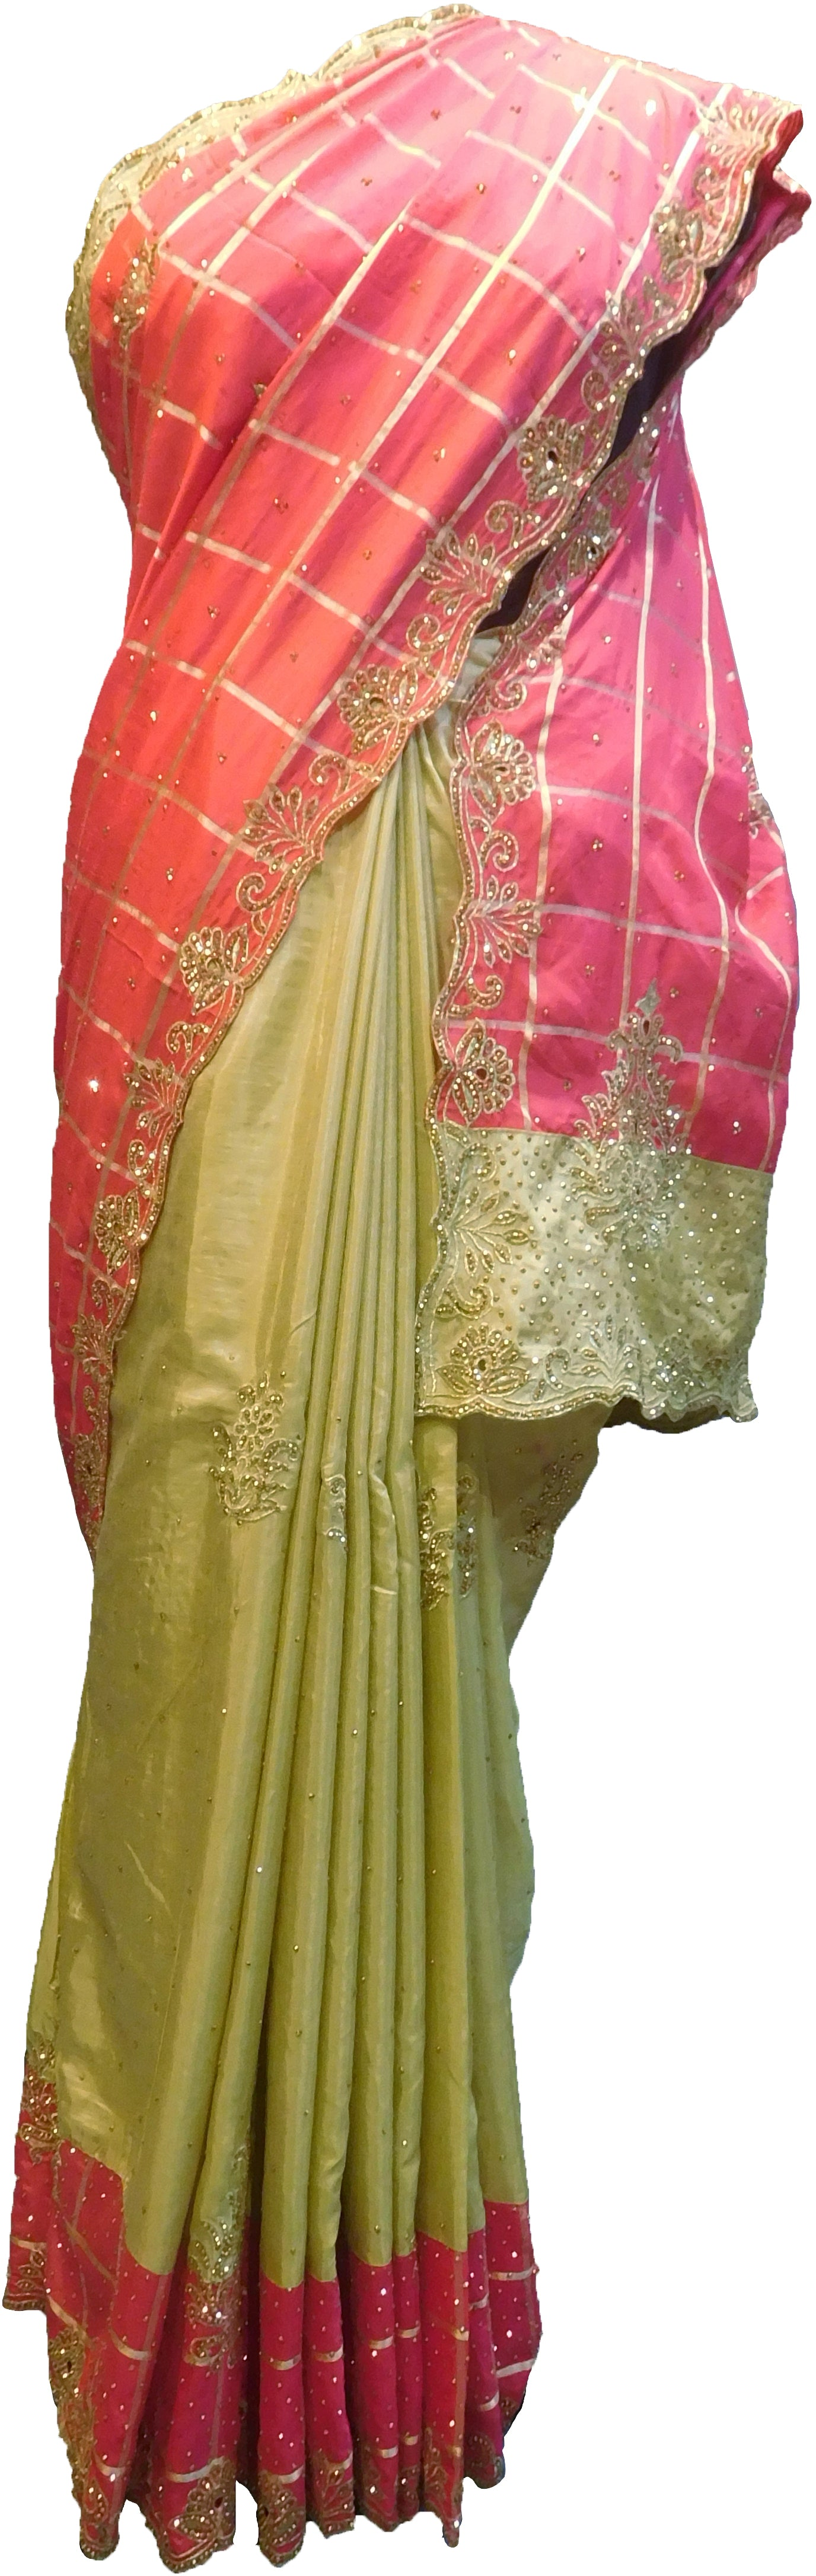 SMSAREE Pink & Golden Designer Wedding Partywear Silk Stone & Zari Hand Embroidery Work Bridal Saree Sari With Blouse Piece F282